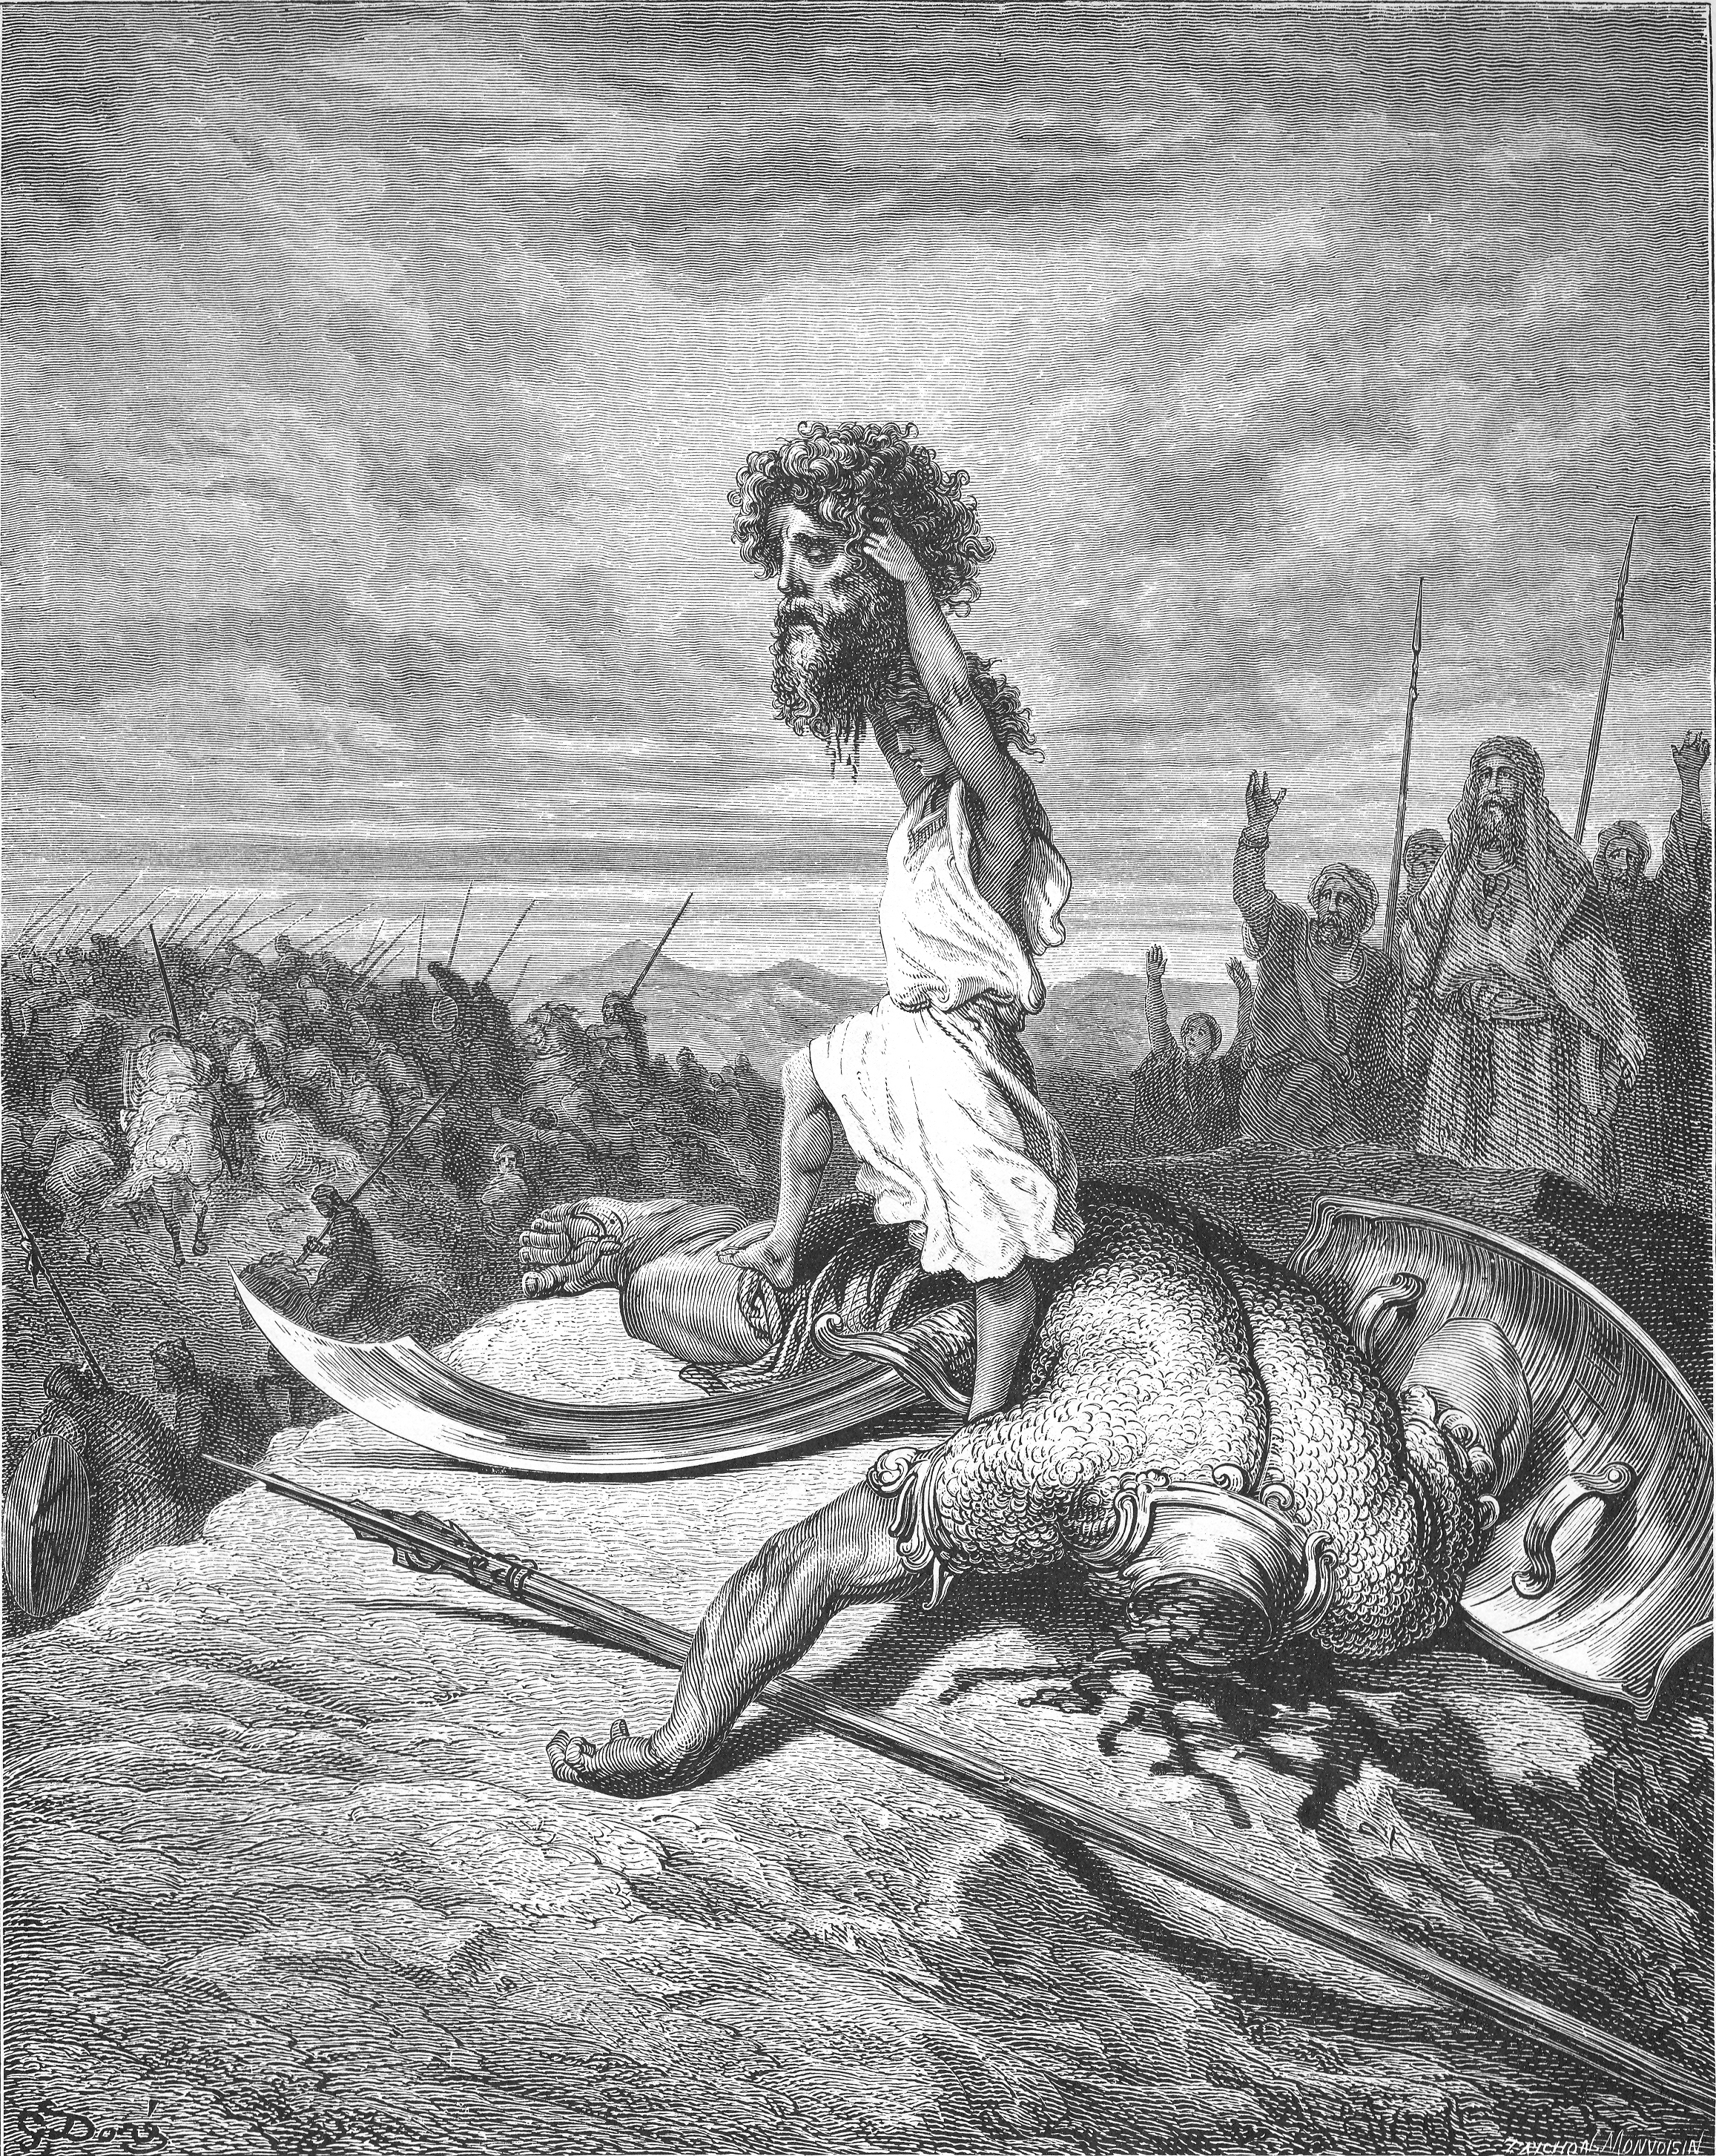 Severed head of Goliath by Gustave Doré (1866).